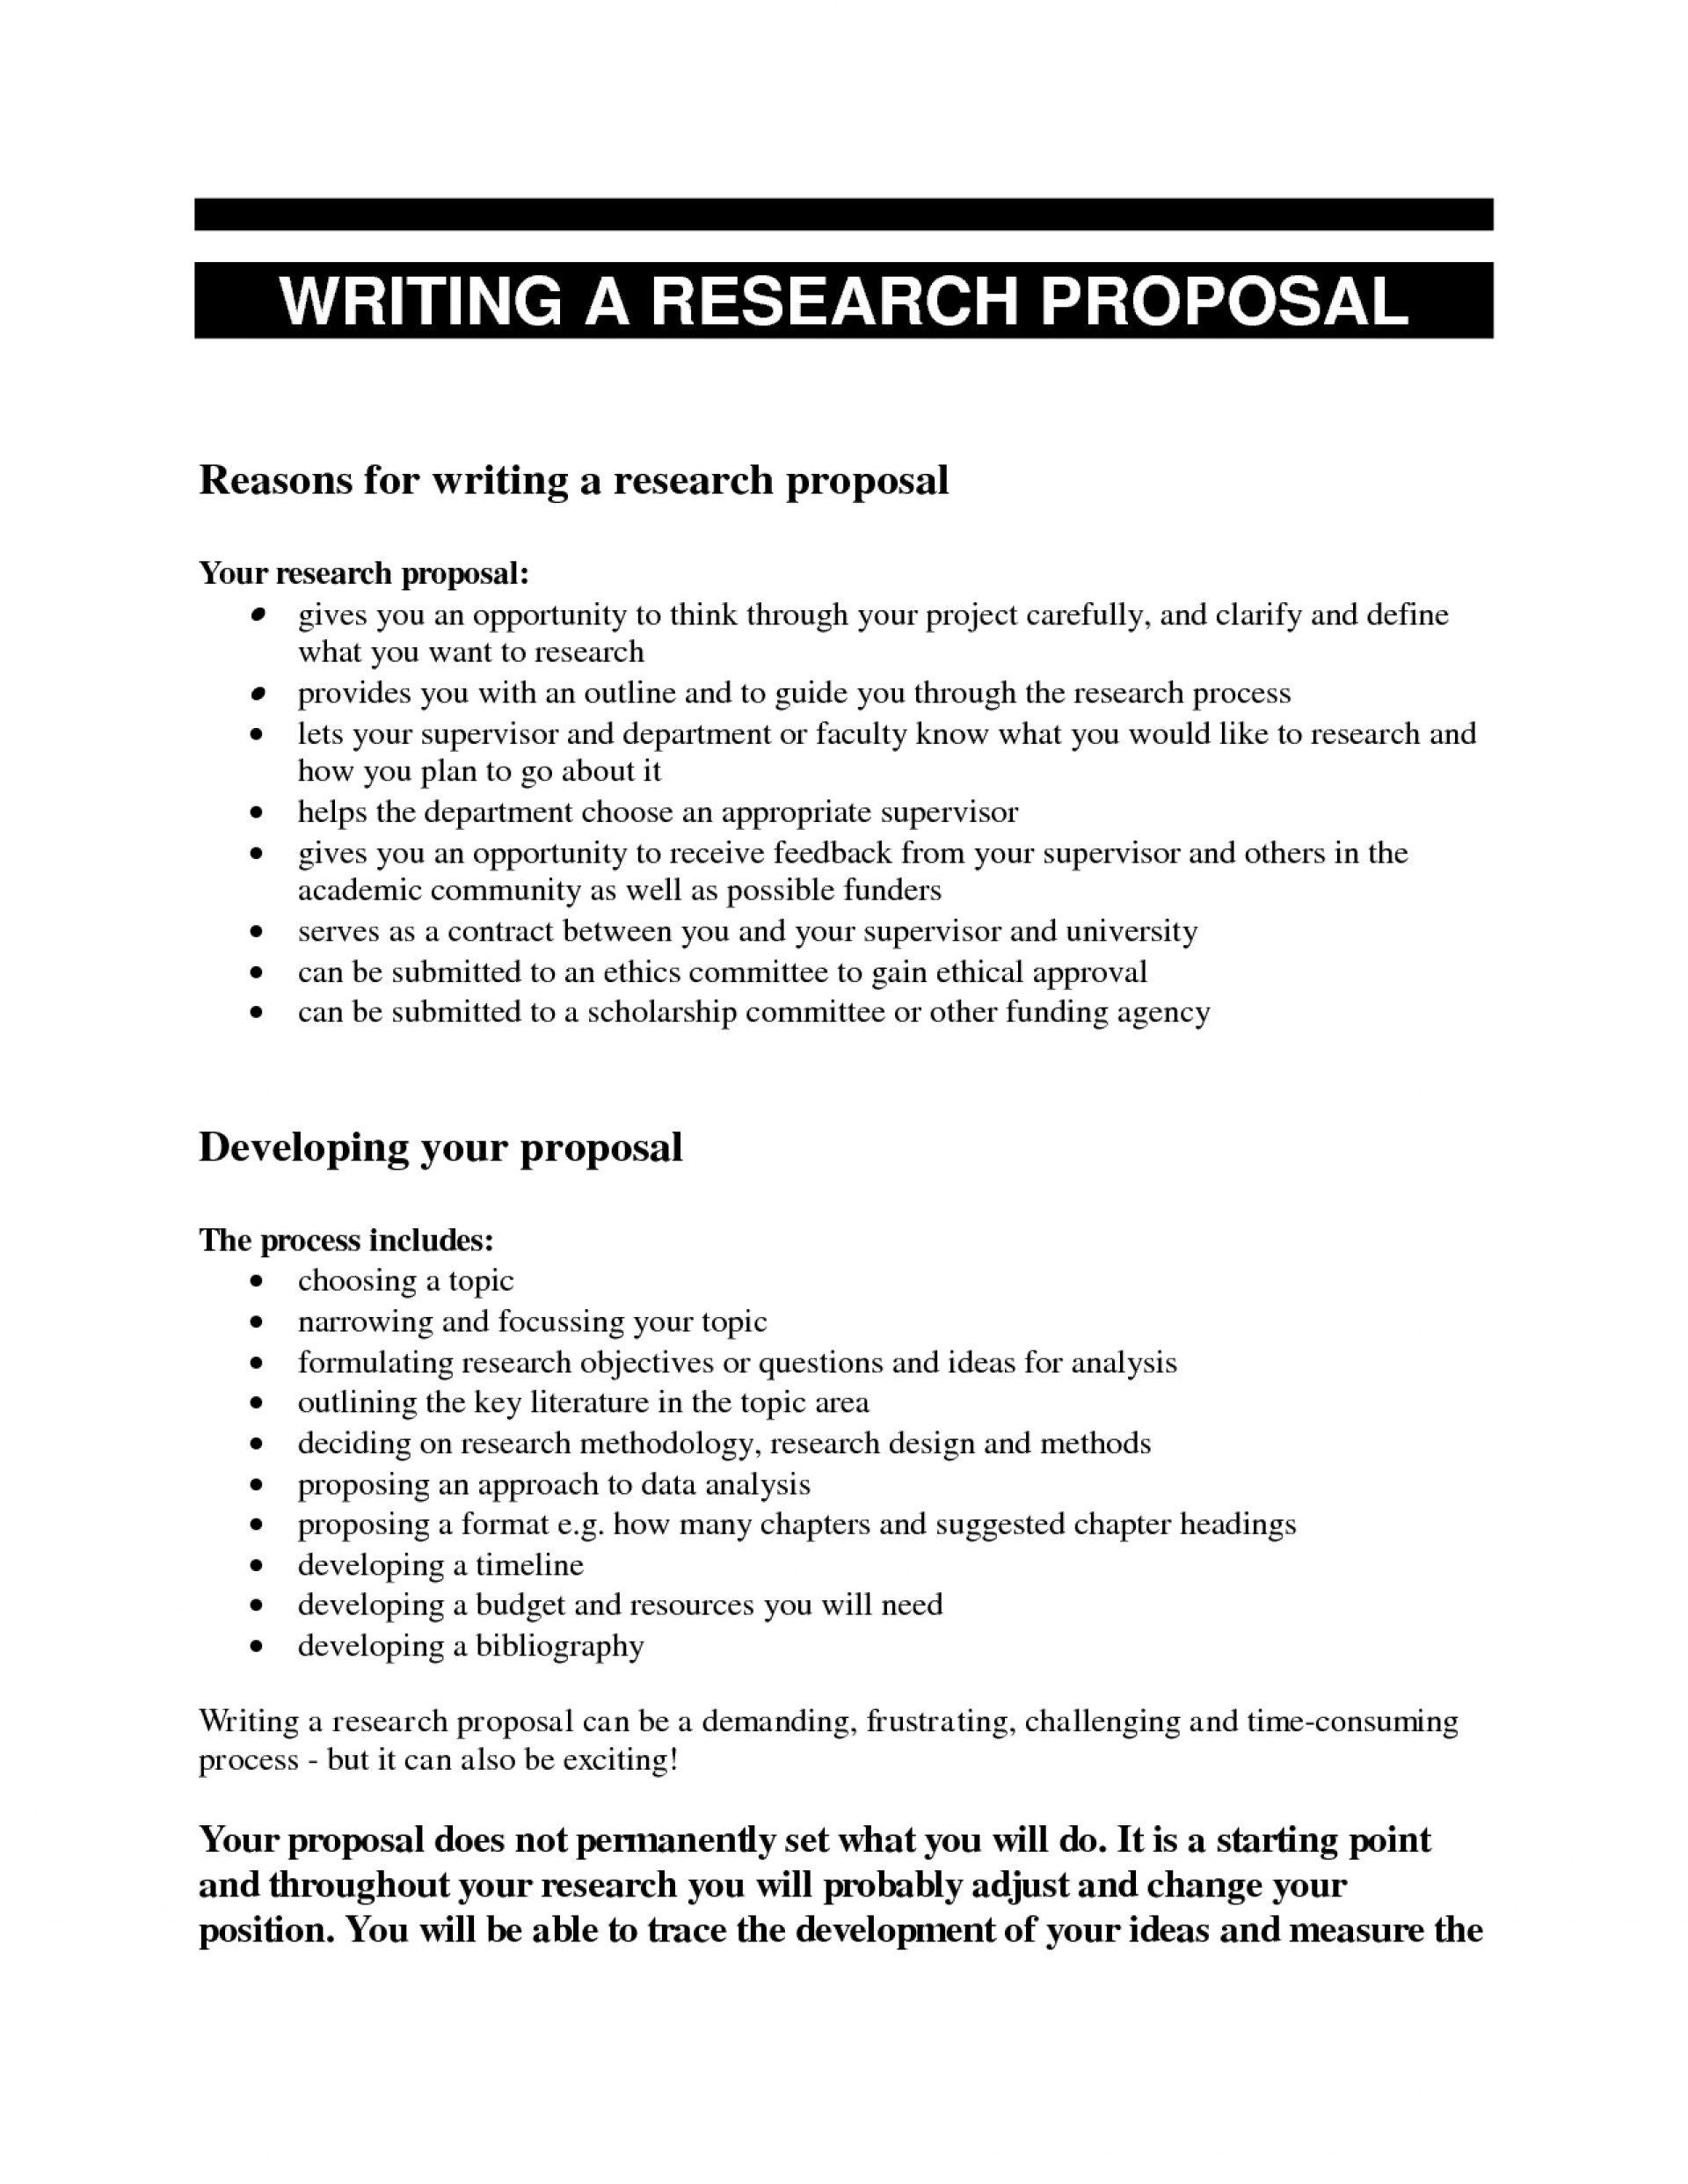 015 Research Proposal Essay Topics Questions Paper Example Thesis 5ykfu Pdf High School Turabian Chicago Apa Format Stunning Examples Free Solution 1920